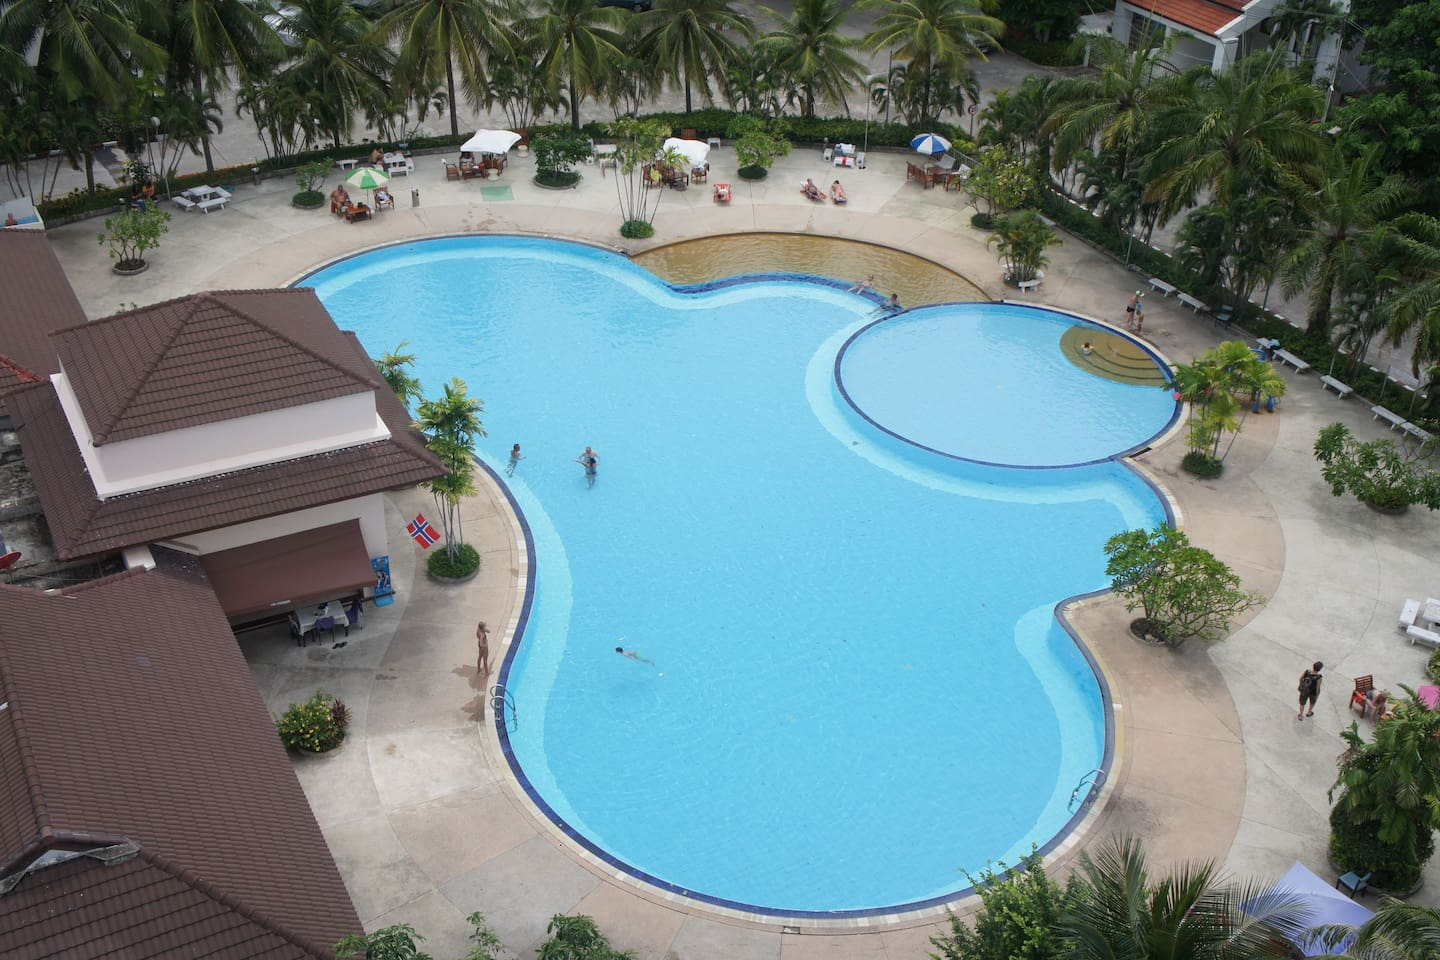 The swimming pool is huge, there's also a kid's pool and even a poolside restaurant.